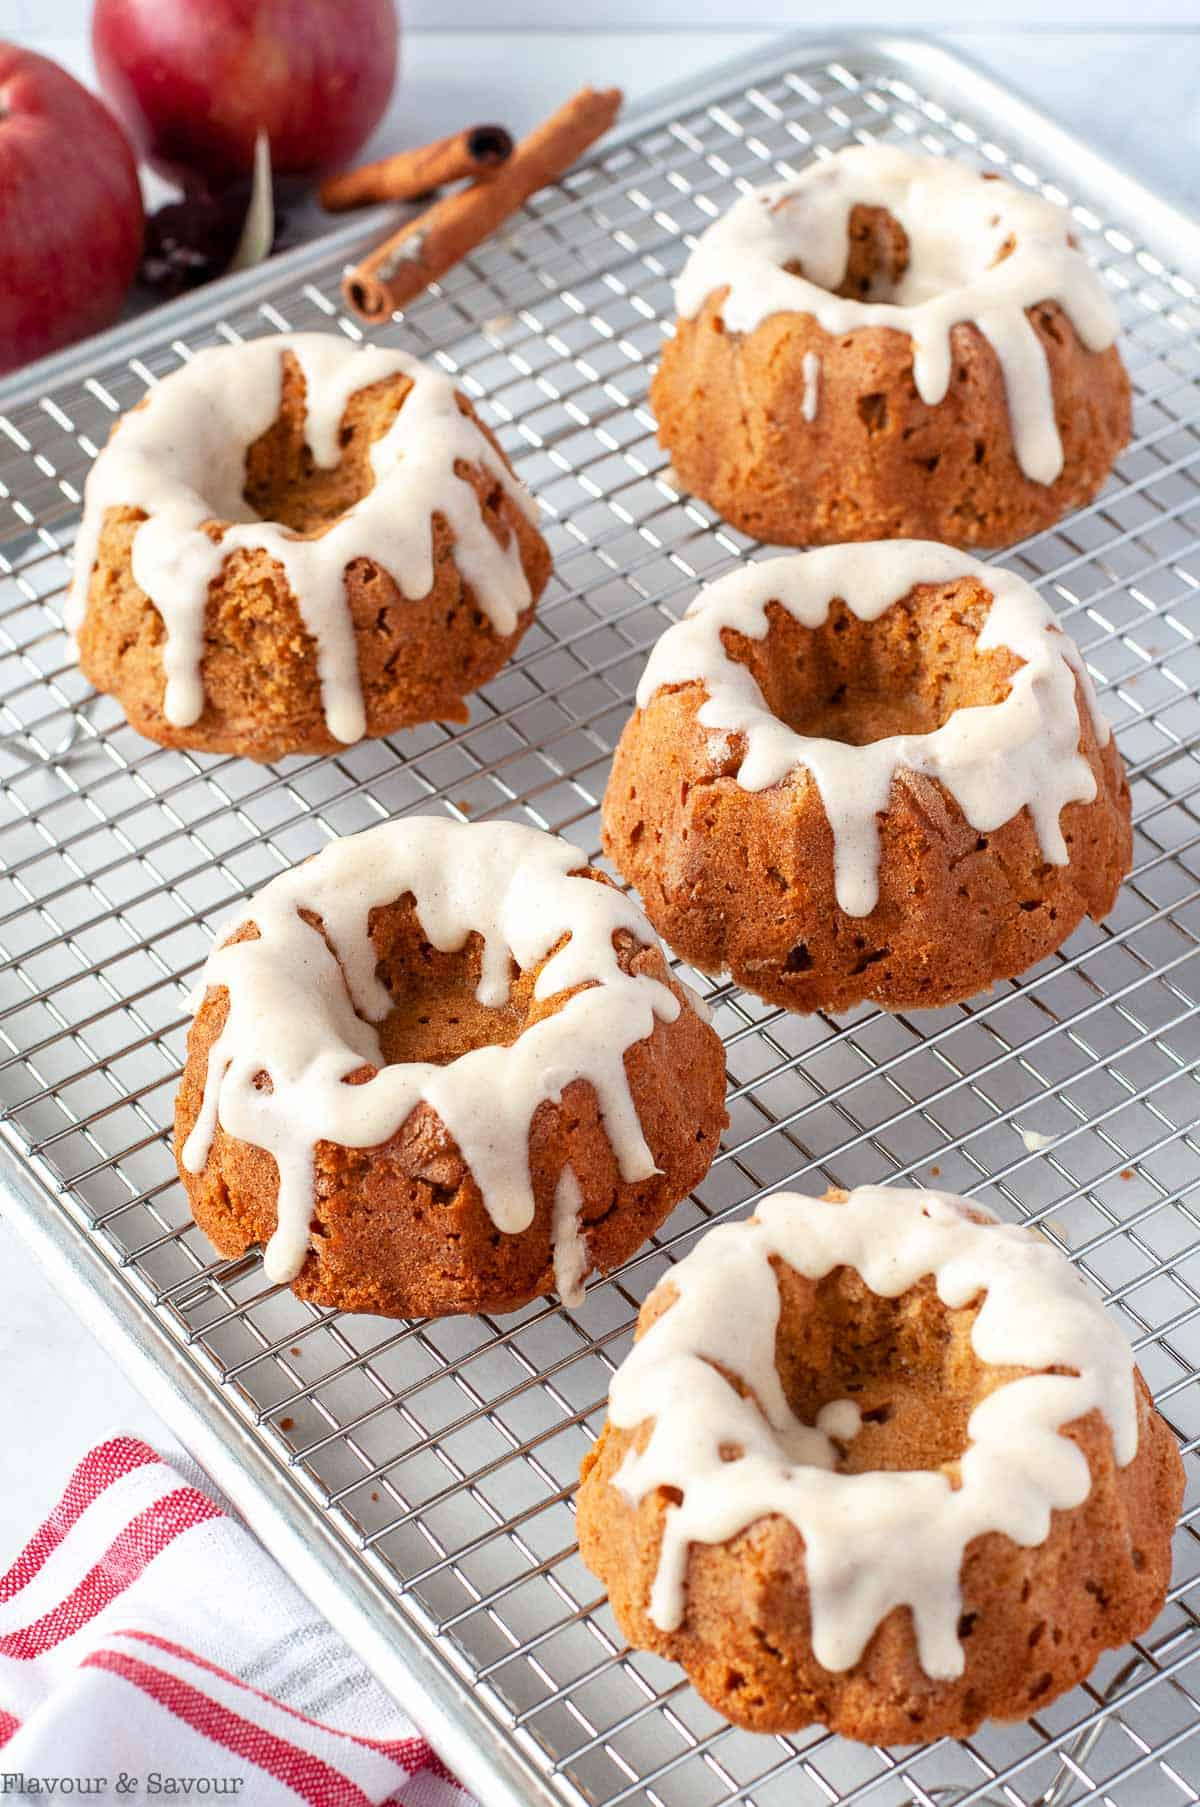 Glazed Mini Apple Bundt cakes on a cooling rack